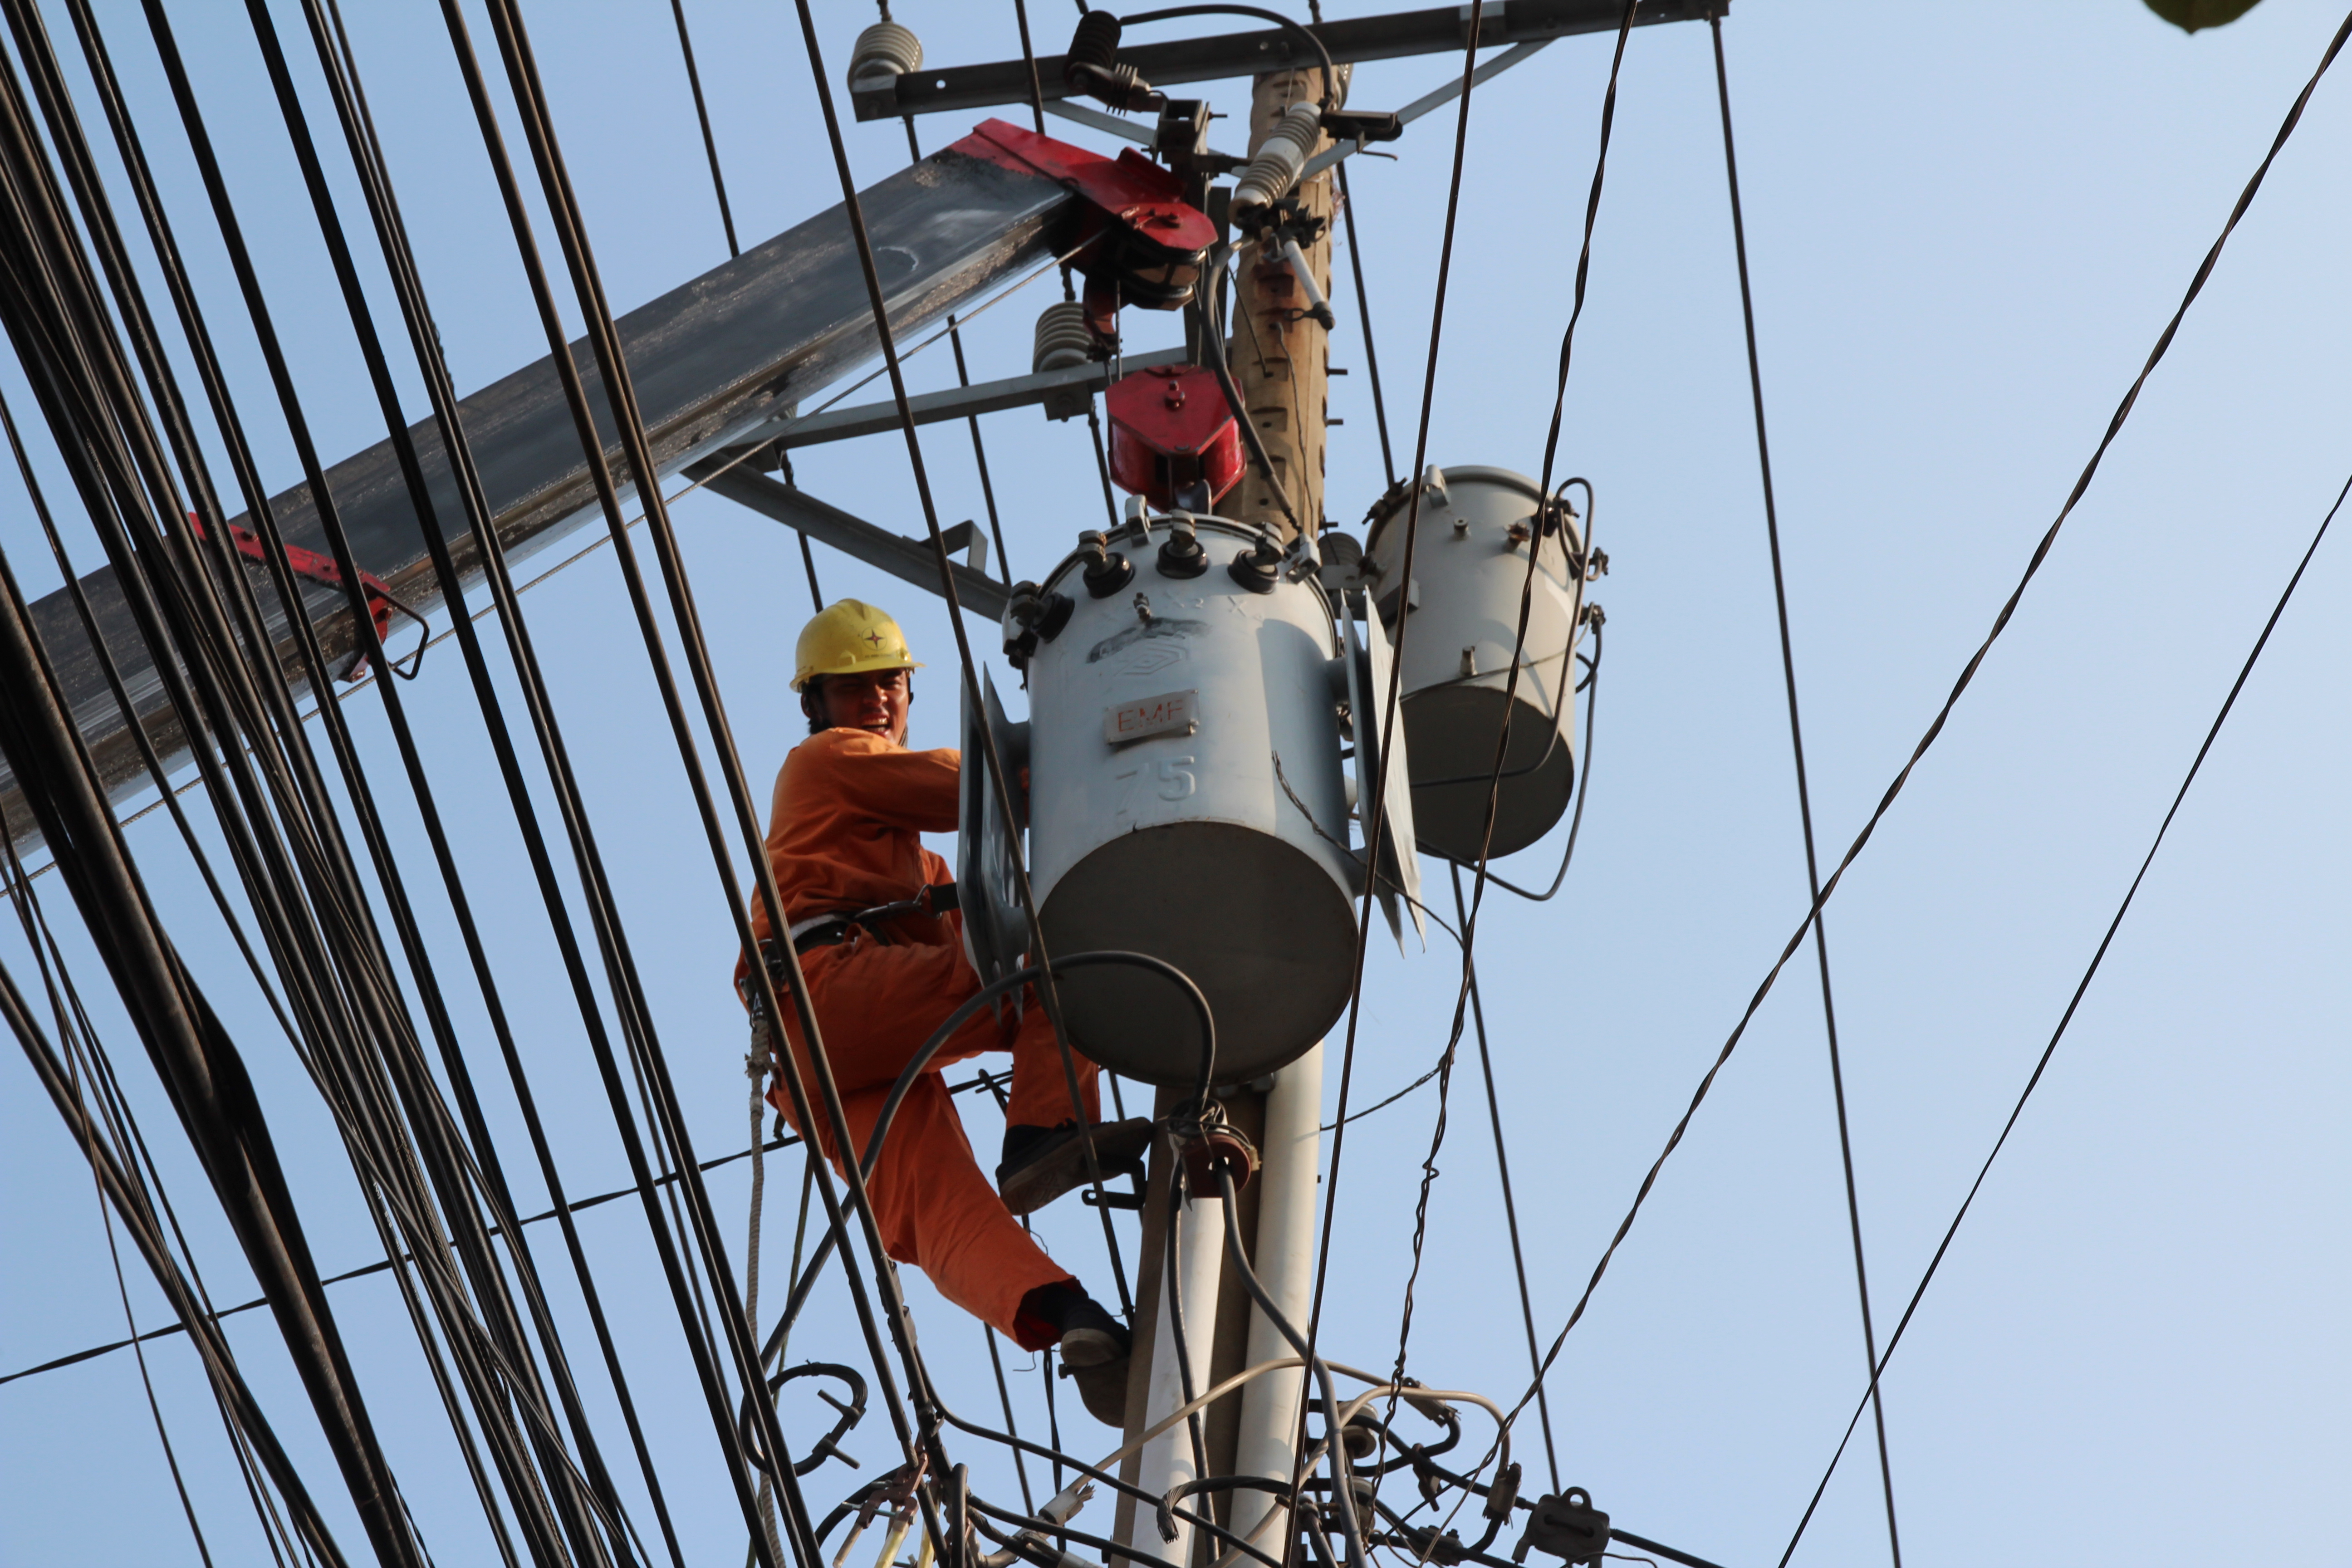 Thailand's power firm to set up $2.26 bln plant in central VN